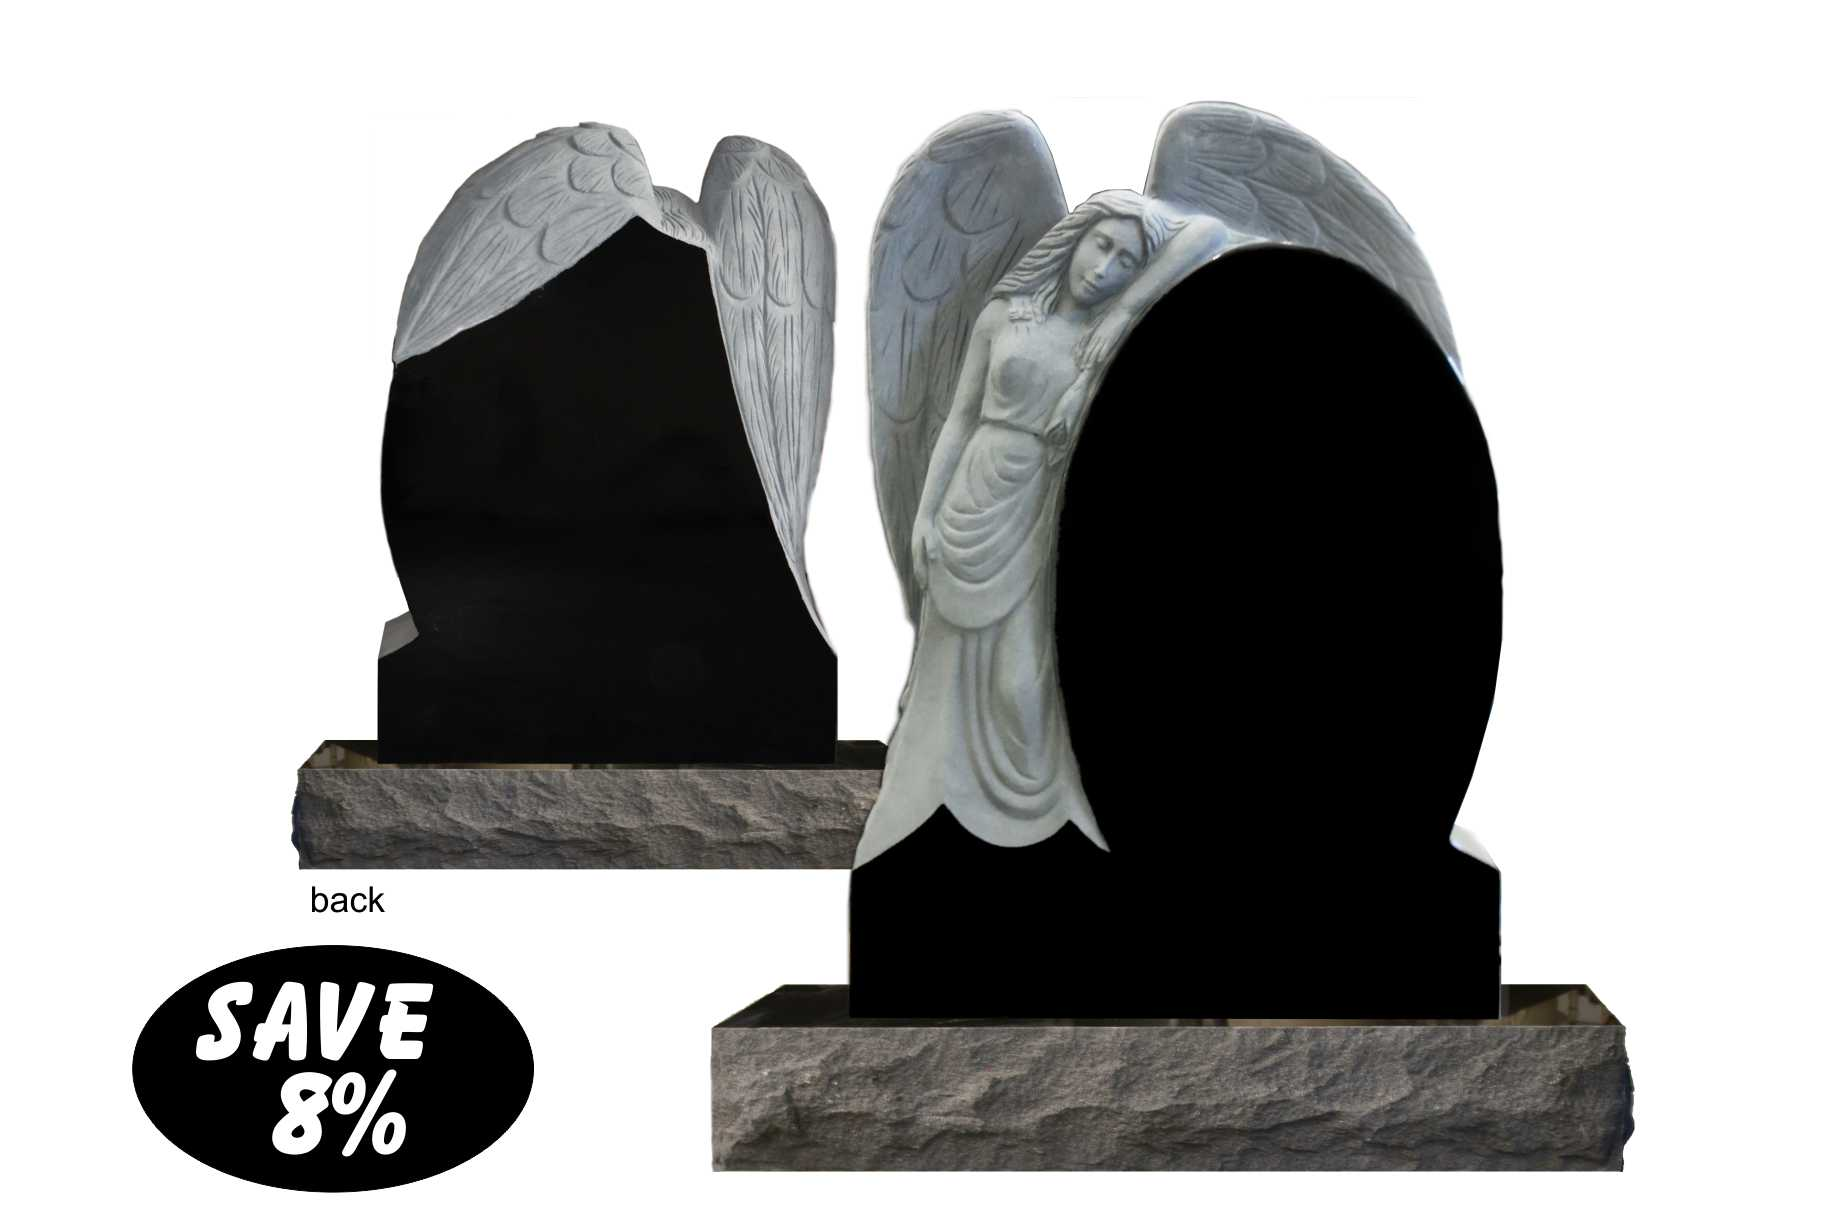 2-2 x 0-8 x 3-0 Imported Black all polished with sculpted angel and matching 3-0 x 1-0 x 0-6 polish top base